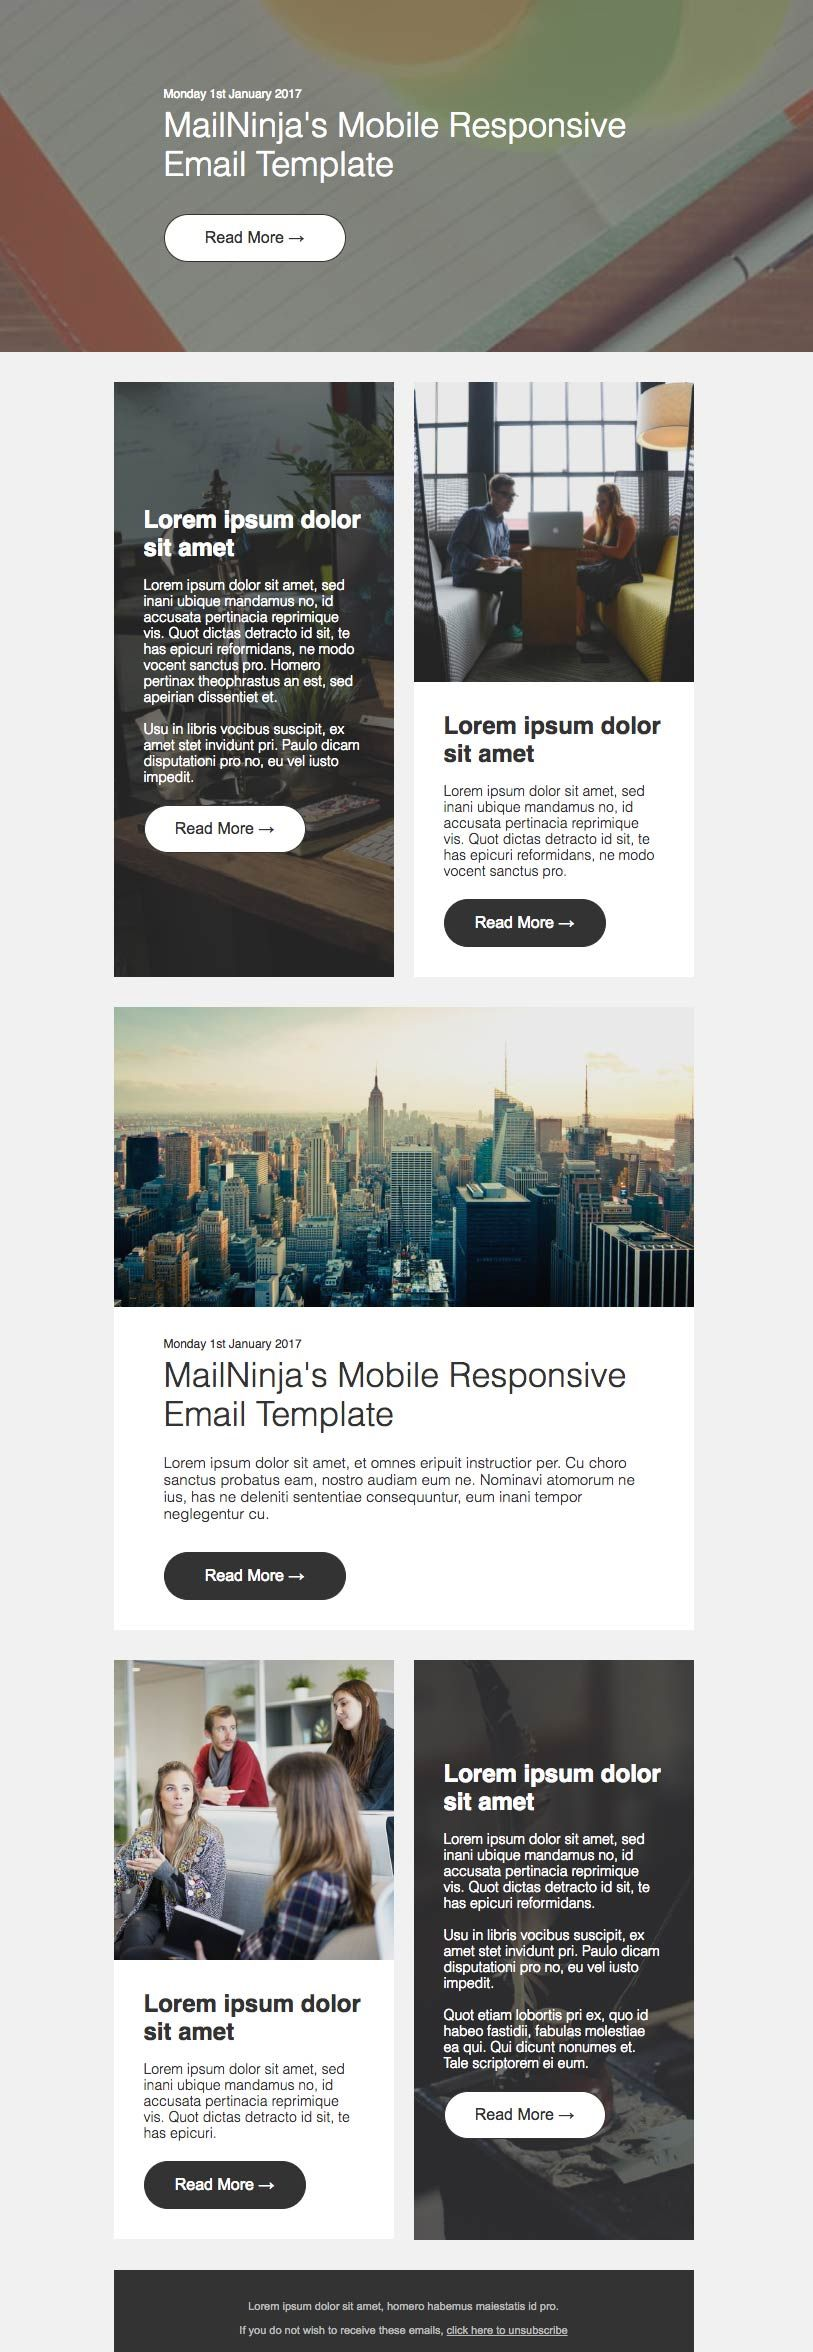 Pin by MailNinja on MailNinja HTML Email Template Designs ...